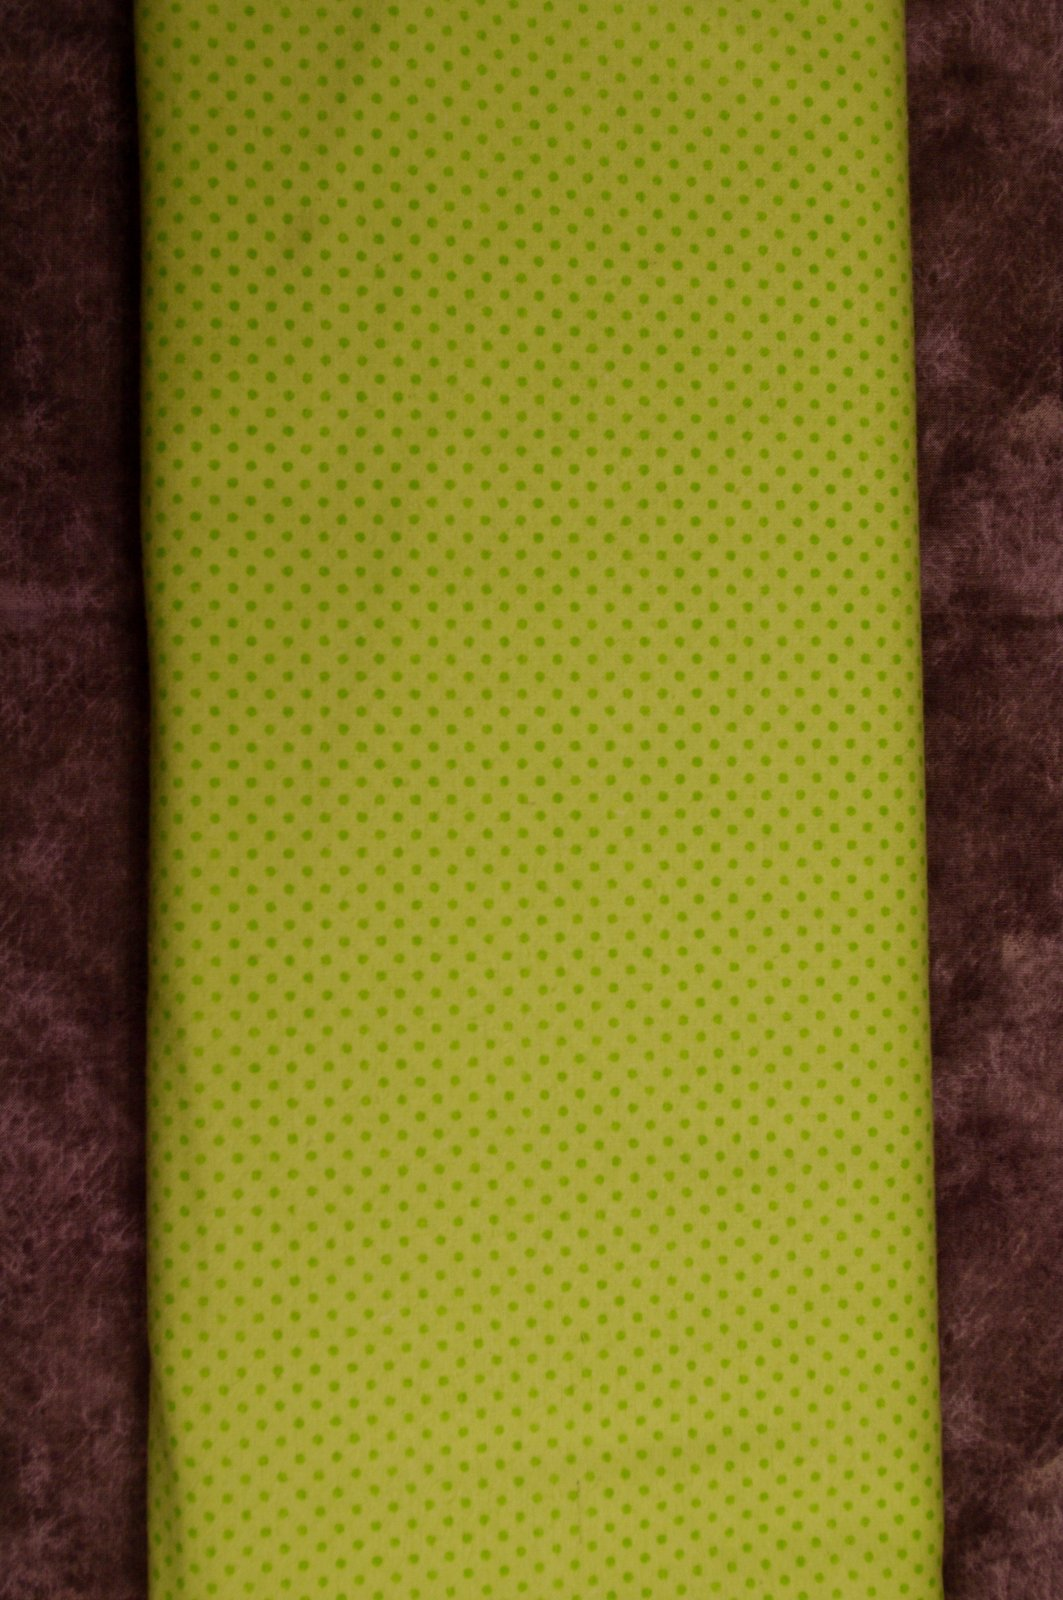 Flatfold Flannel - Green Polka Dots